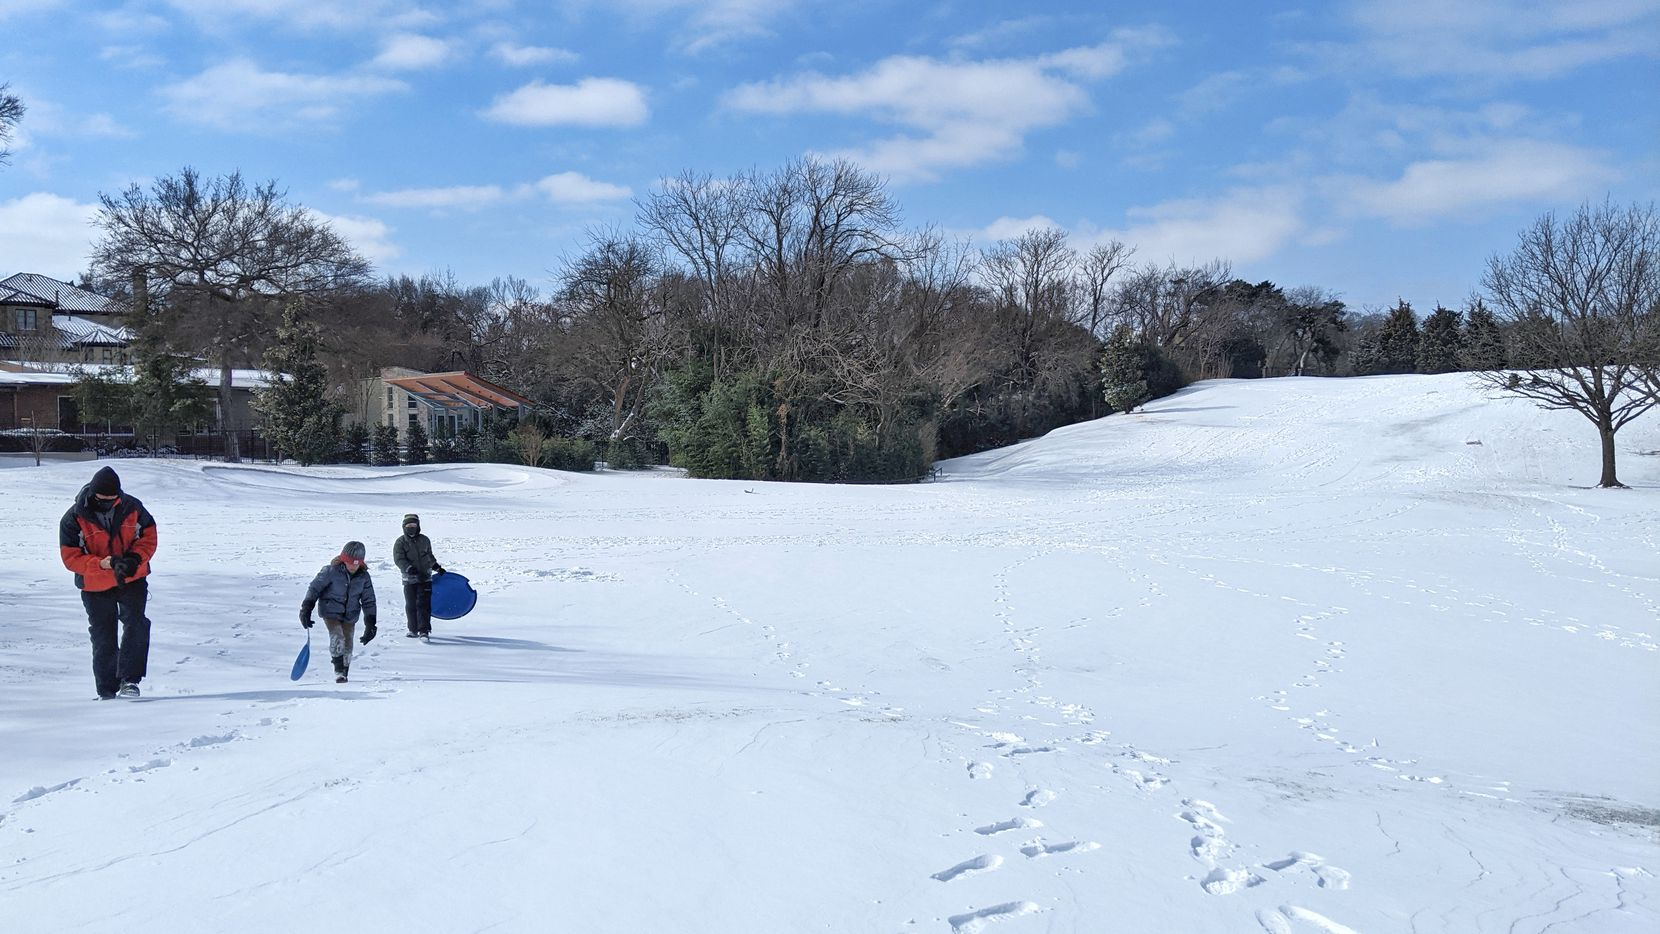 Dr. Fernan Rodriguez, his son Luca Rodriguez (center) and Will Kemp take advantage the snowy conditions to use their sleds on the third fairway at Stevens Park Golf Course in Dallas on Monday, Feb. 15, 2021.  Freezing conditions may end up causing damage to golf courses throughout North Texas.